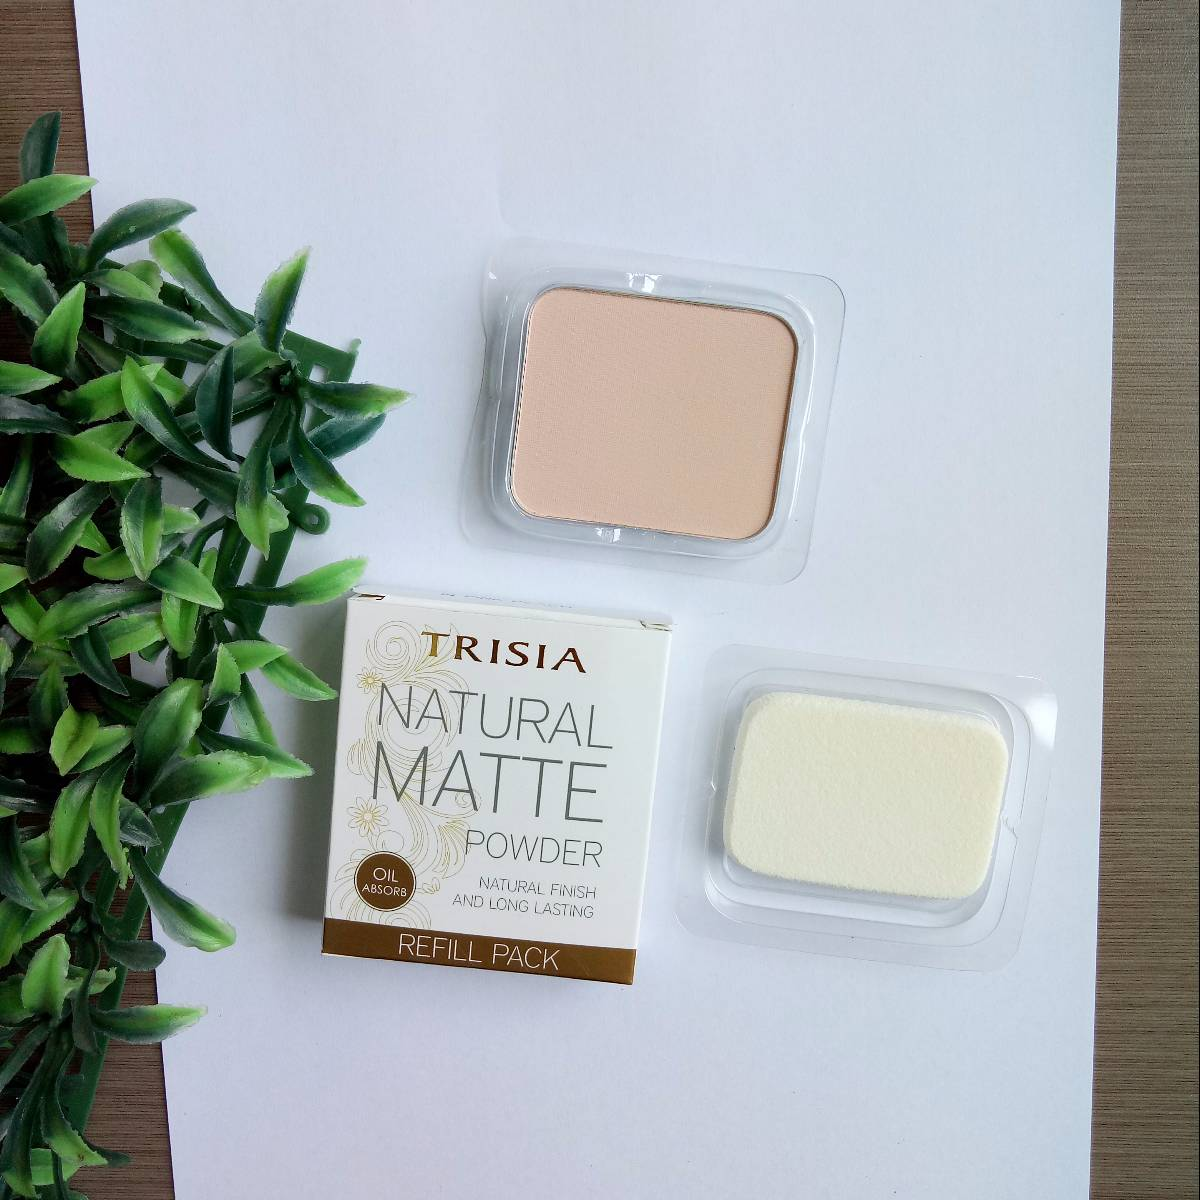 Trisia Two Way Cake Twc Natural Matte Powder Refill Bedak Wajah Isi Ulang